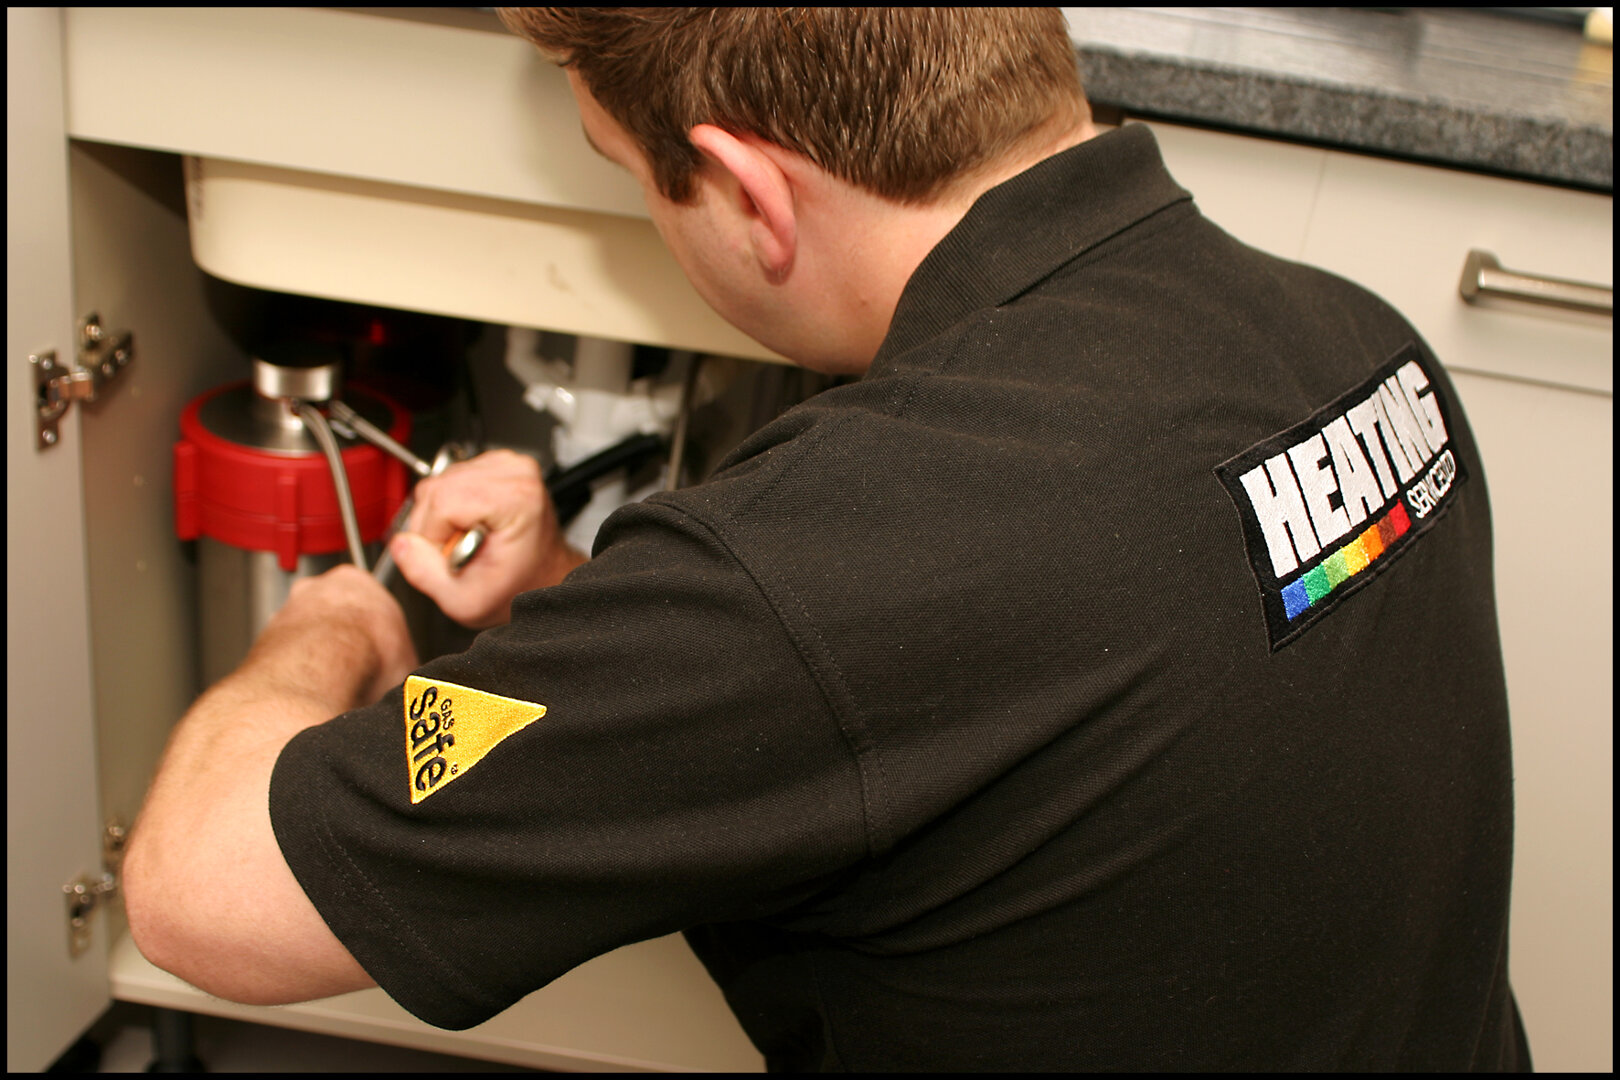 Plumbers Boiler Installation Service and Repairs and Bathroom Design and Installation by Heating Services Ltd in Orpington (3)